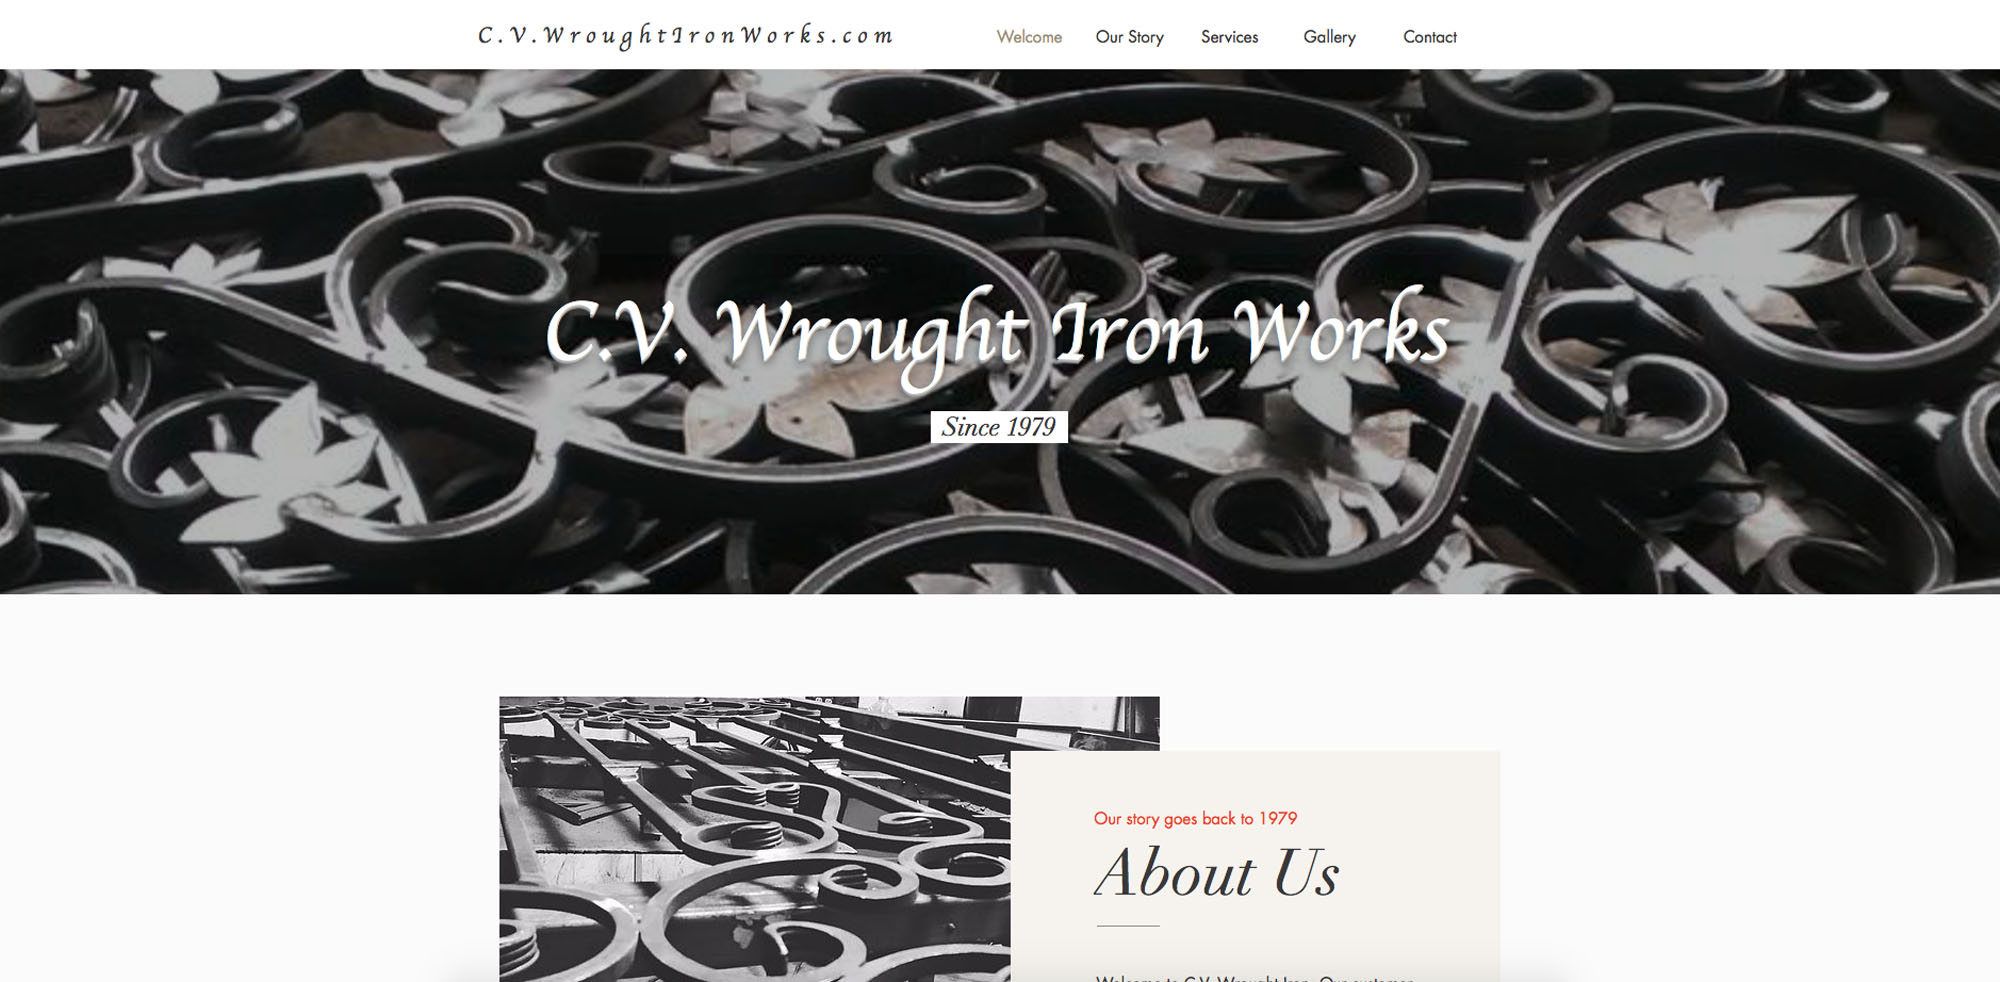 CV Wrought Iron